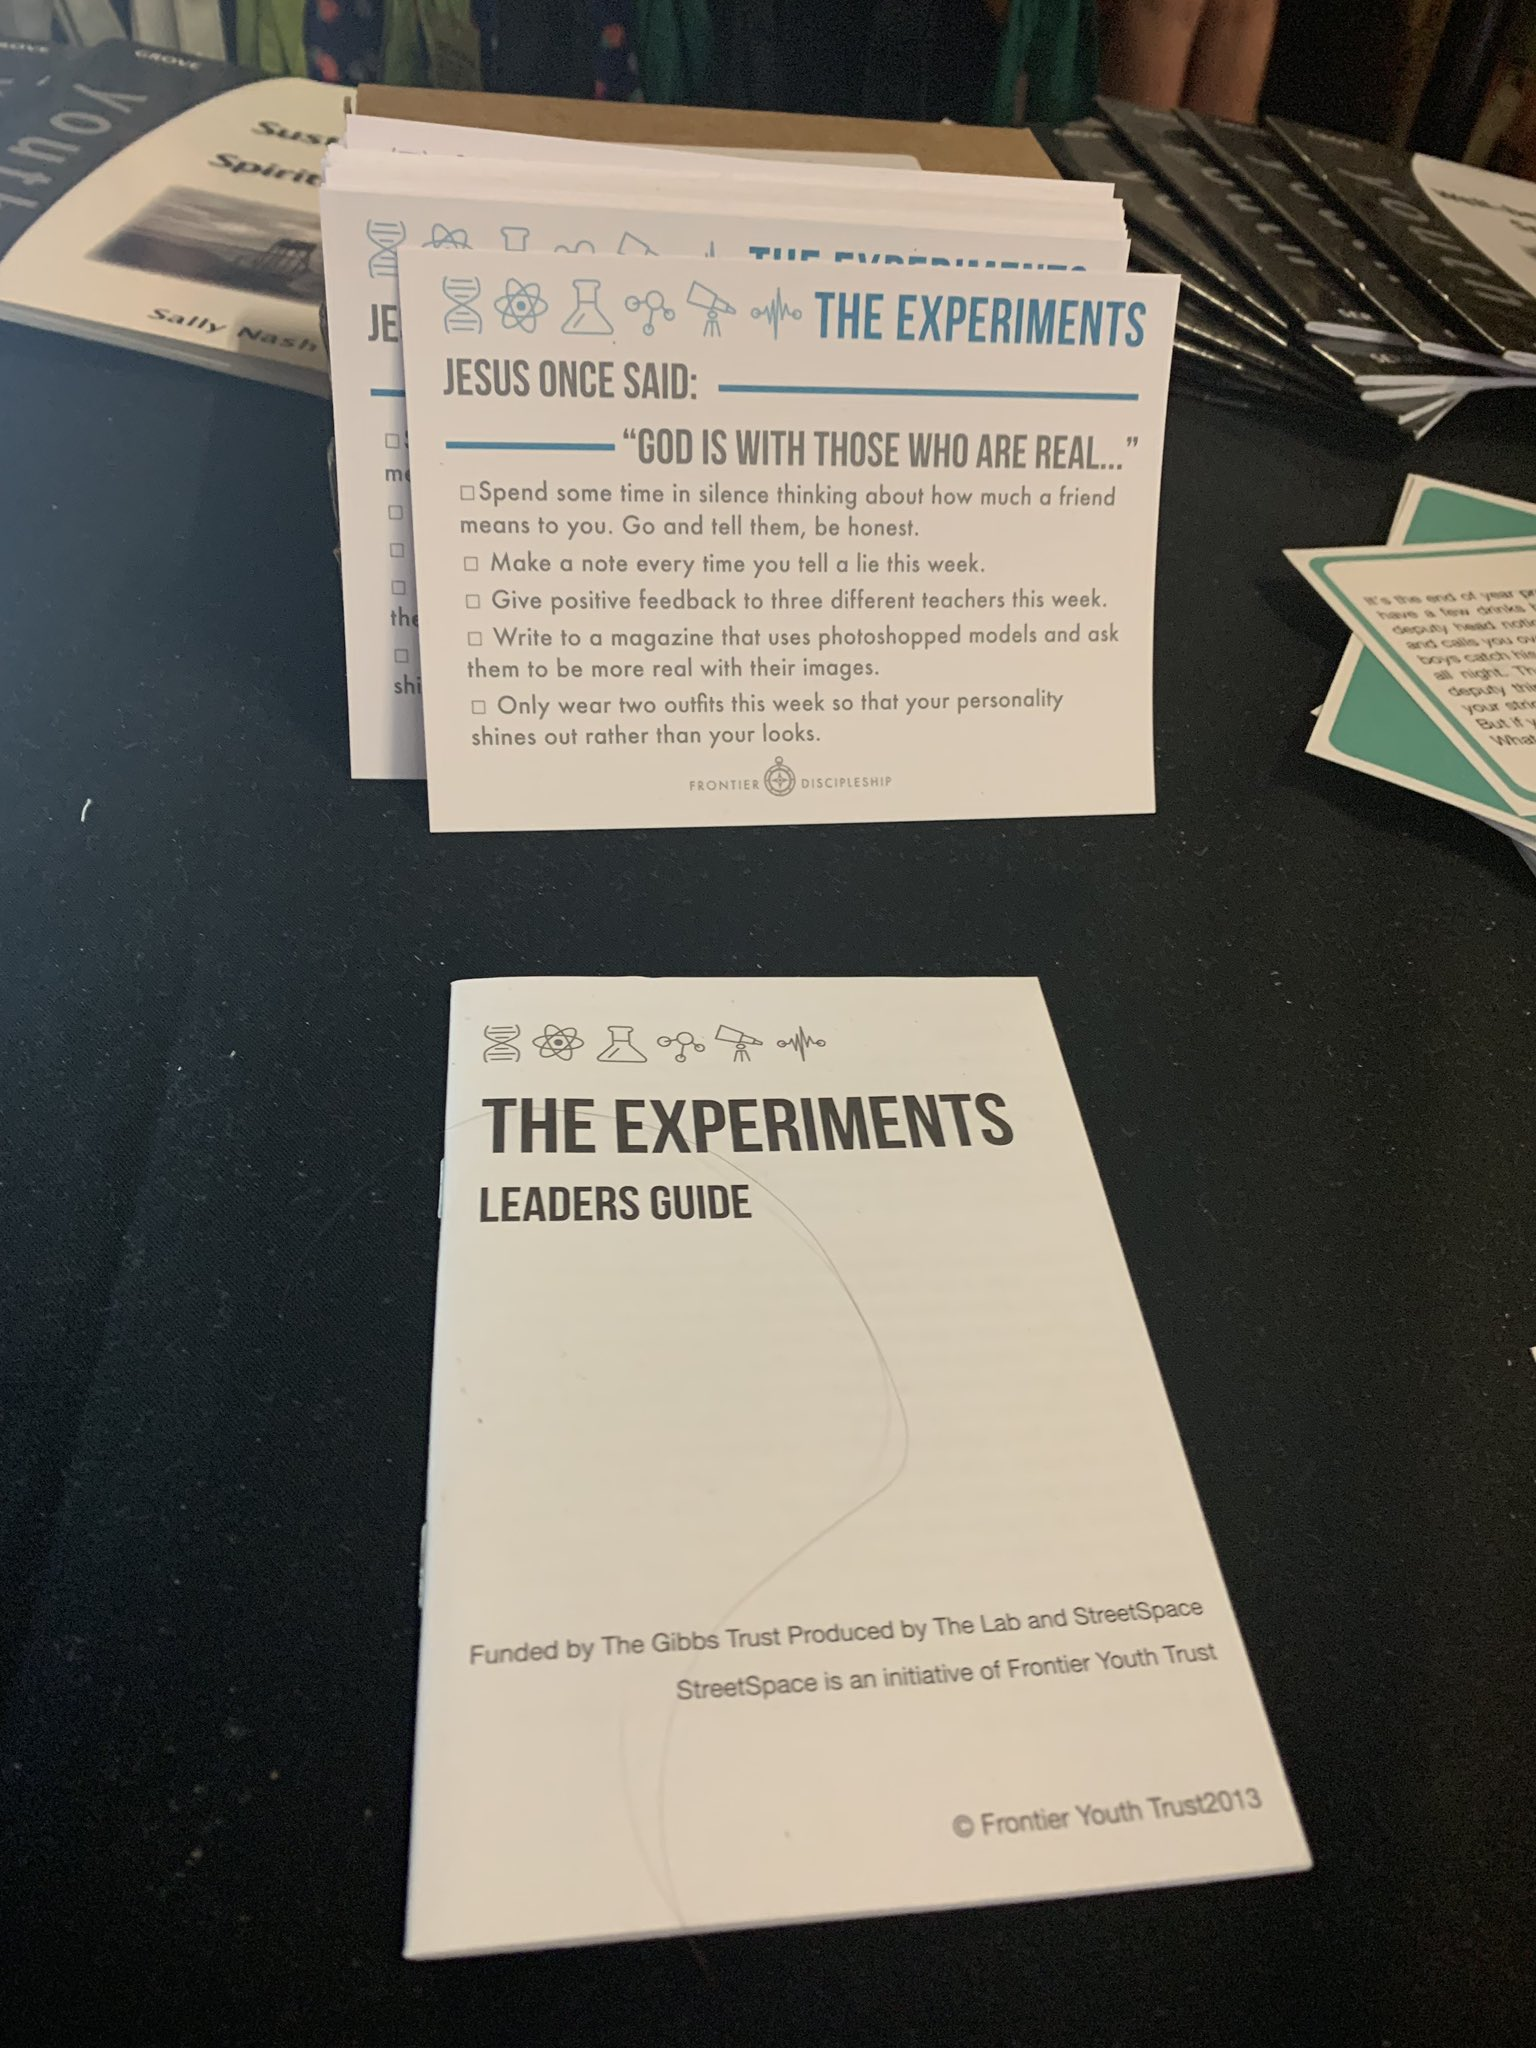 The Experiments is a 10 week discipleship resource that's experimental and reflective, based on the Beatitudes. Head over to the Toolshed to buy your copy! #soulsurvivor19 https://t.co/6rFh3VACOA